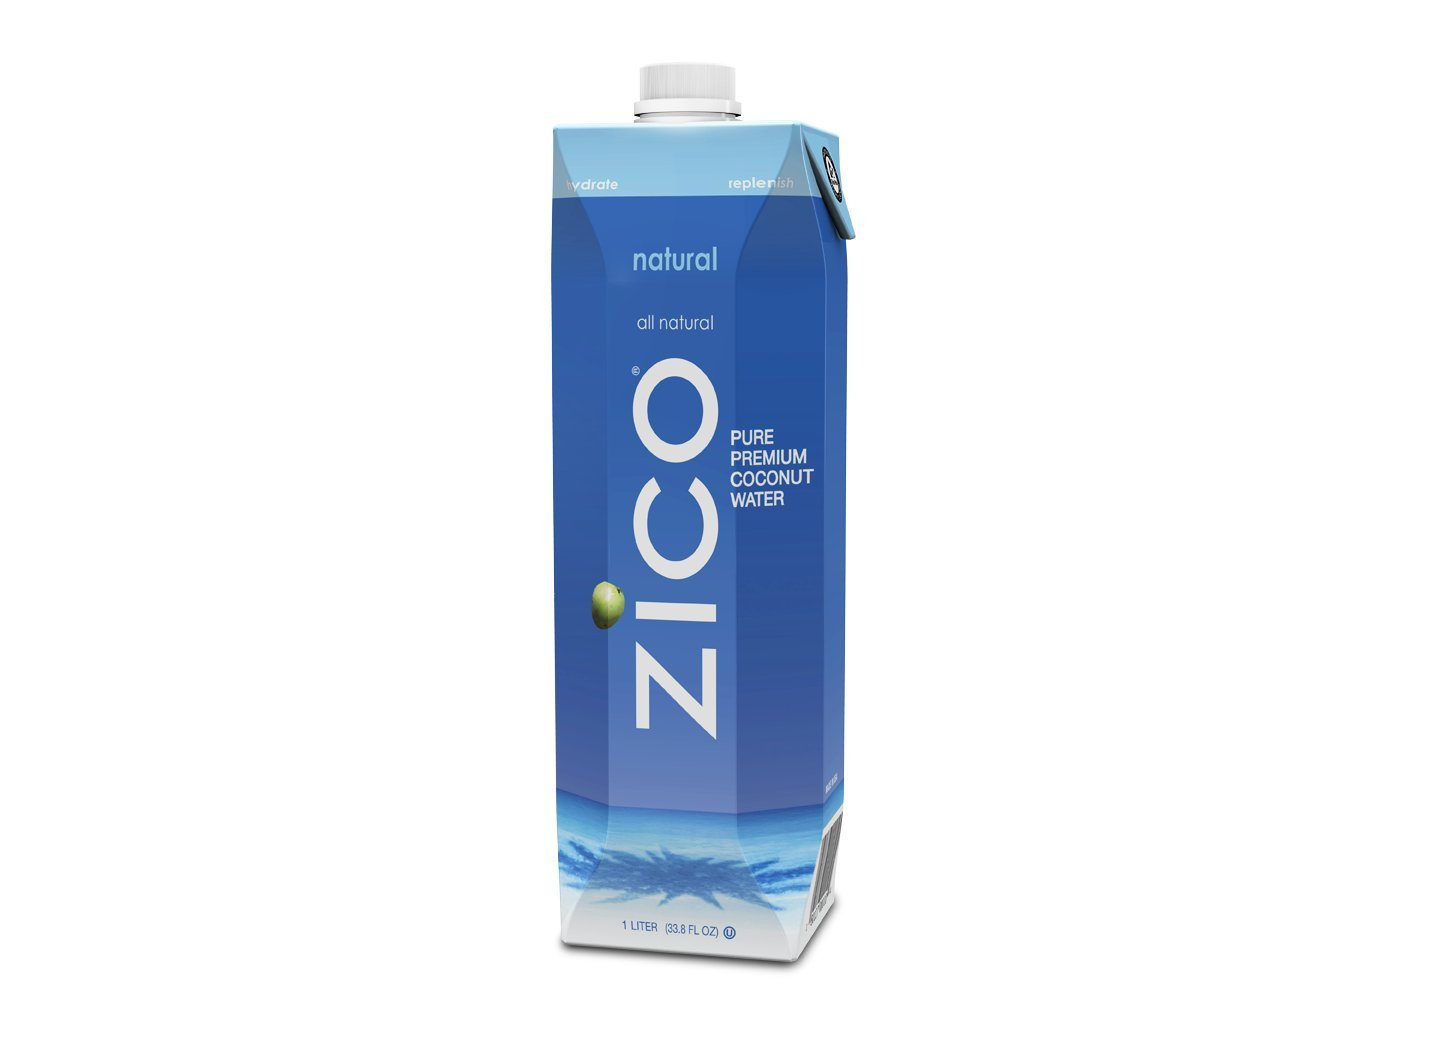 Amazon - 6 x ZICO Pure Premium Coconut Water,natural 33.8oz - $14.49